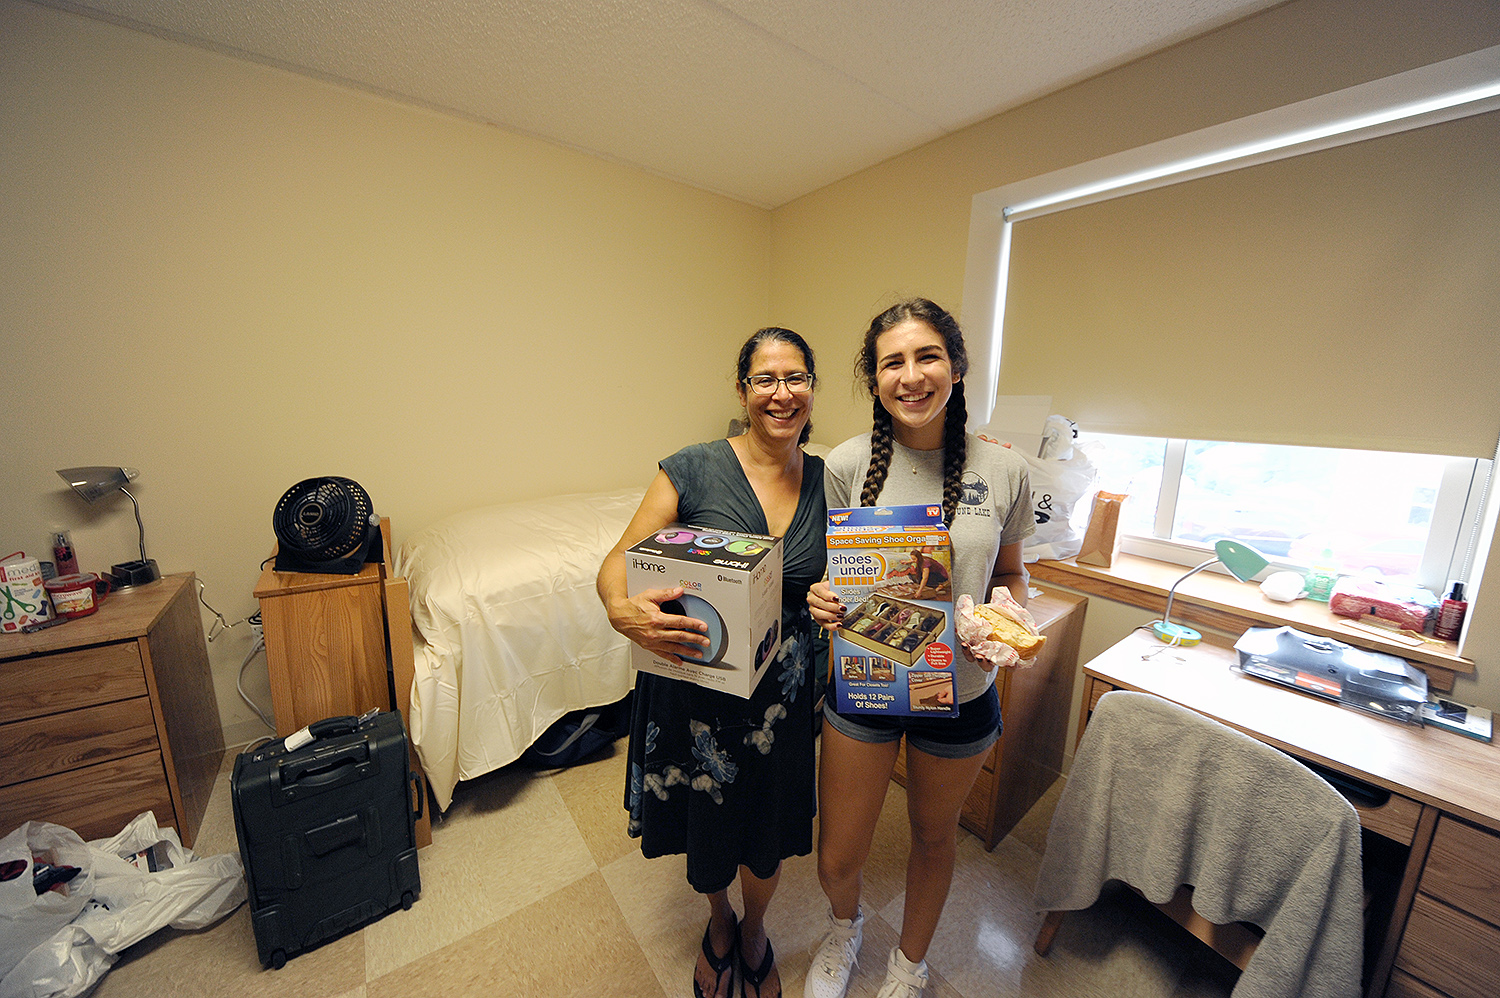 Nancy Auerbach helped her daughter Dalia '20 move to campus on Arrival Day. The Auerbach family is from Claremont, Calif. Dalia always knew she would end up on the East Coast for college and is excited for all the activities Wesleyan has to offer.